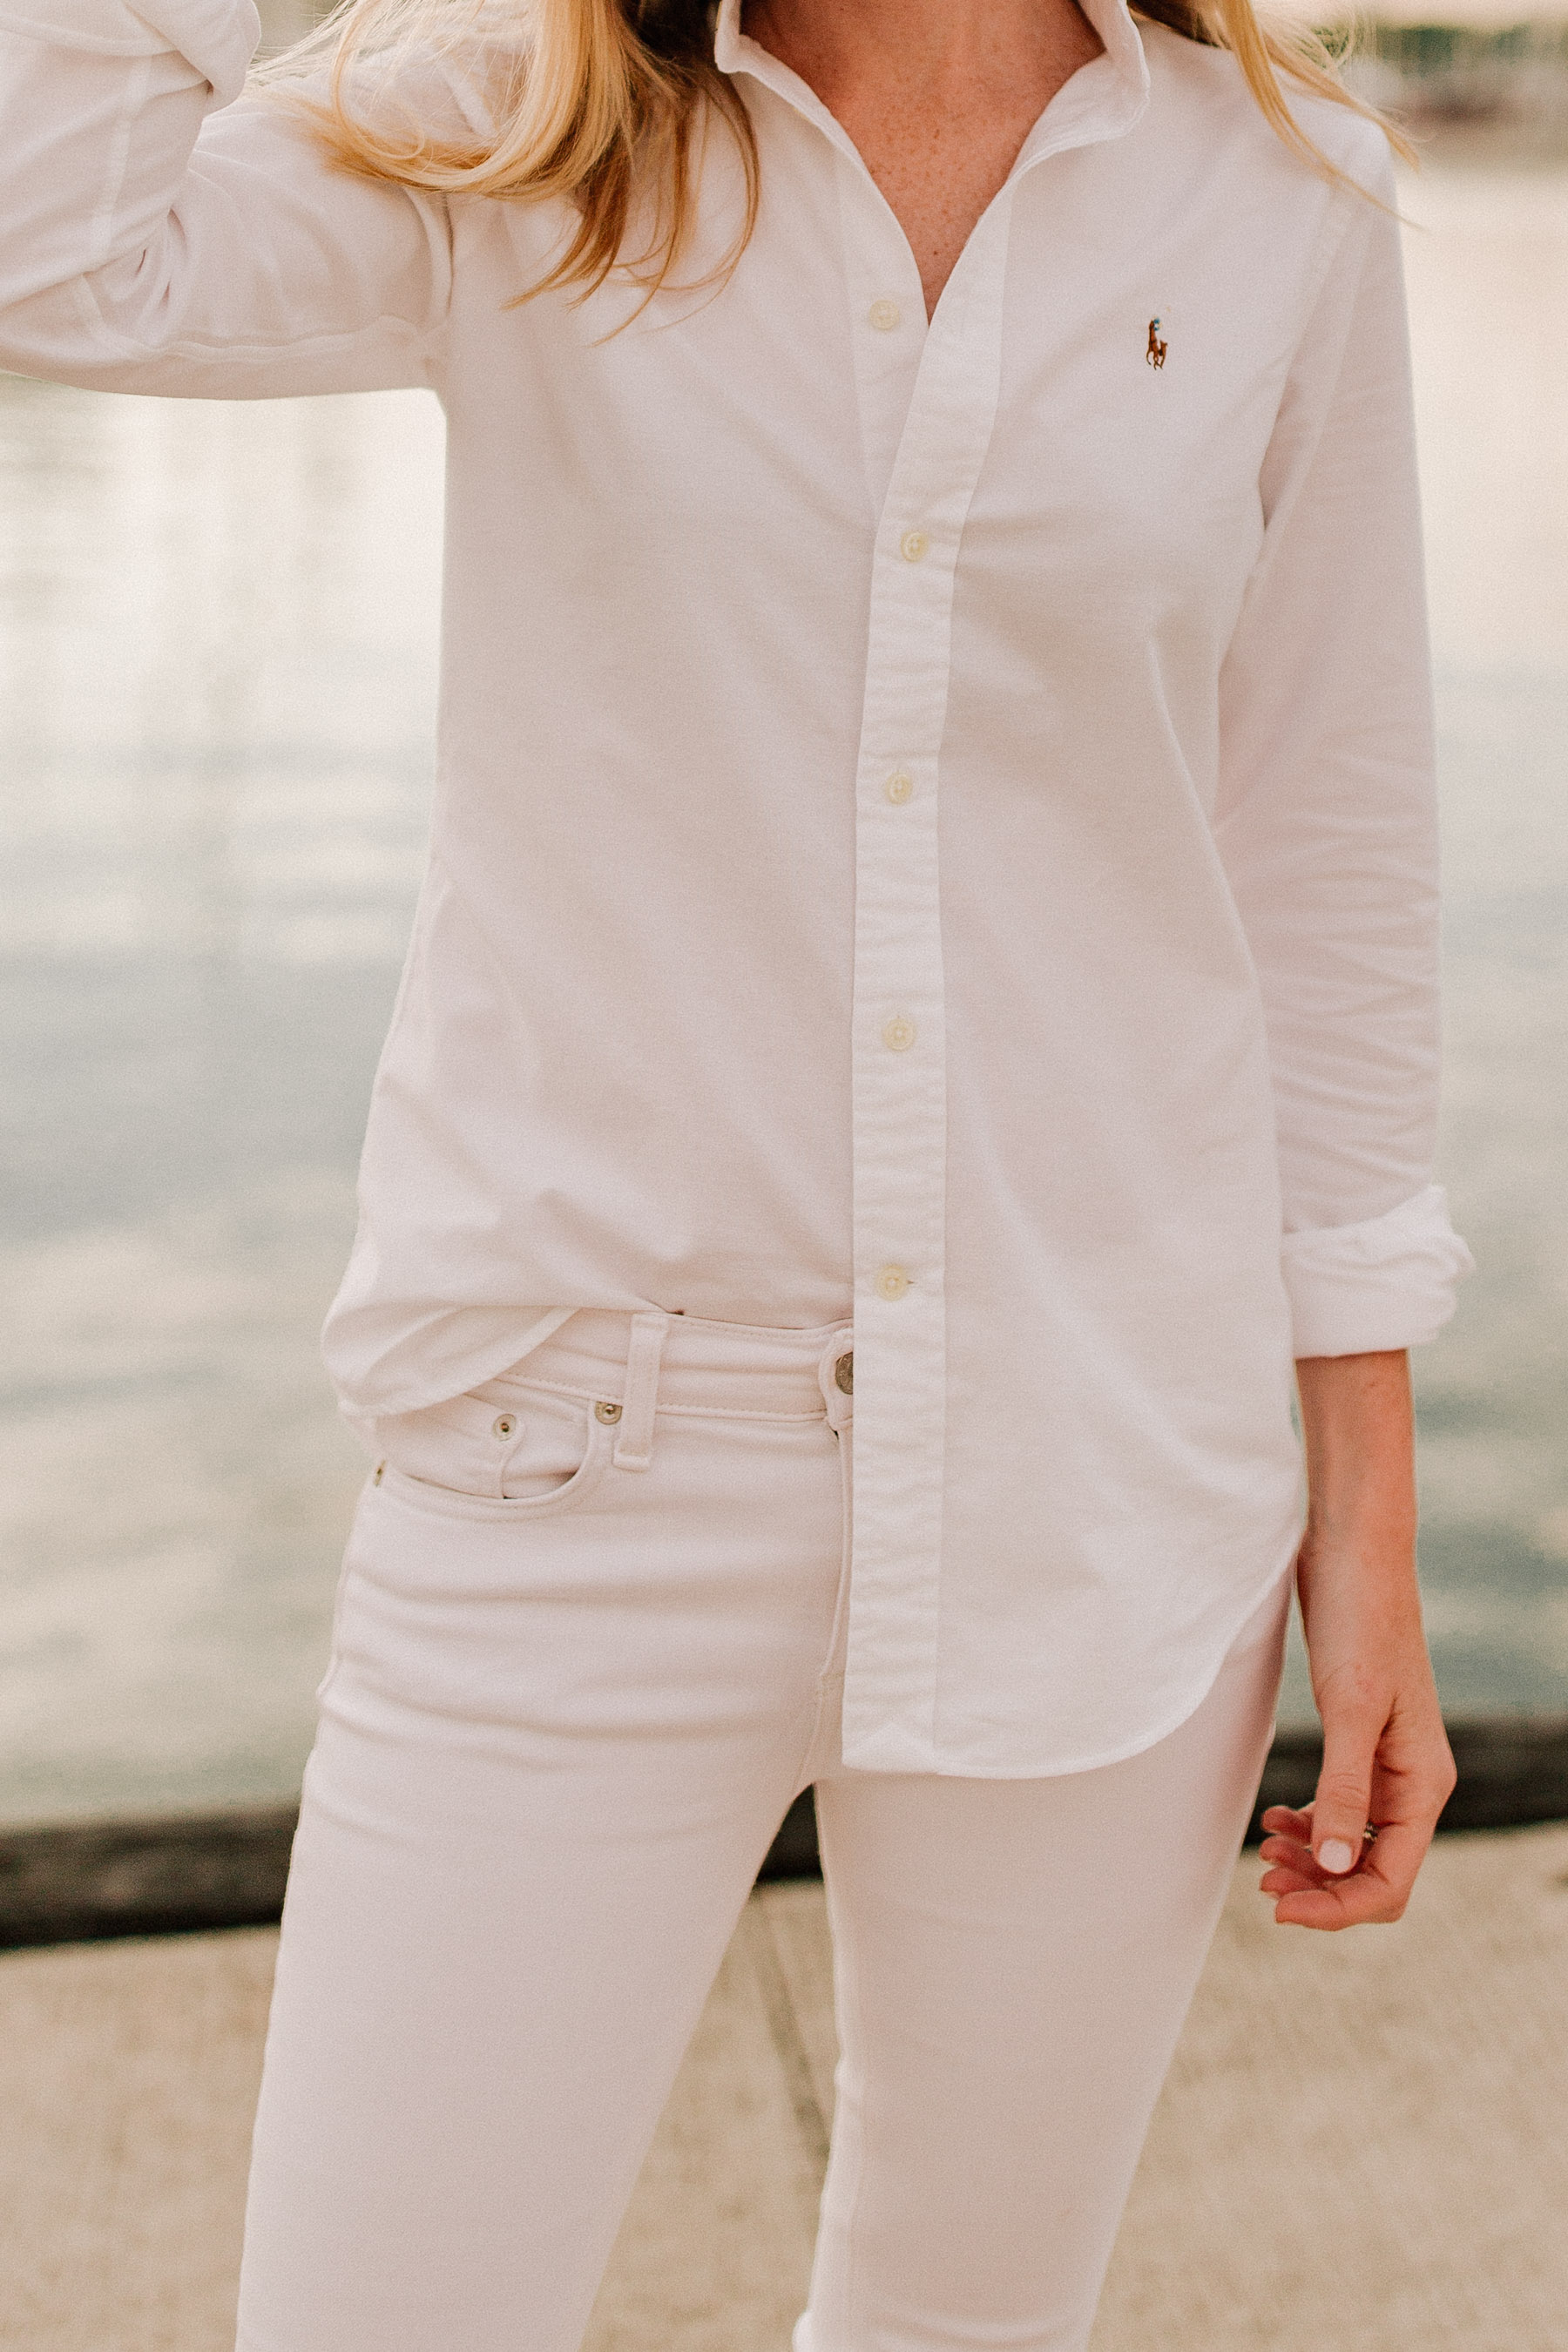 / Knit Cotton Oxford Shirt /  - Kelly in the city